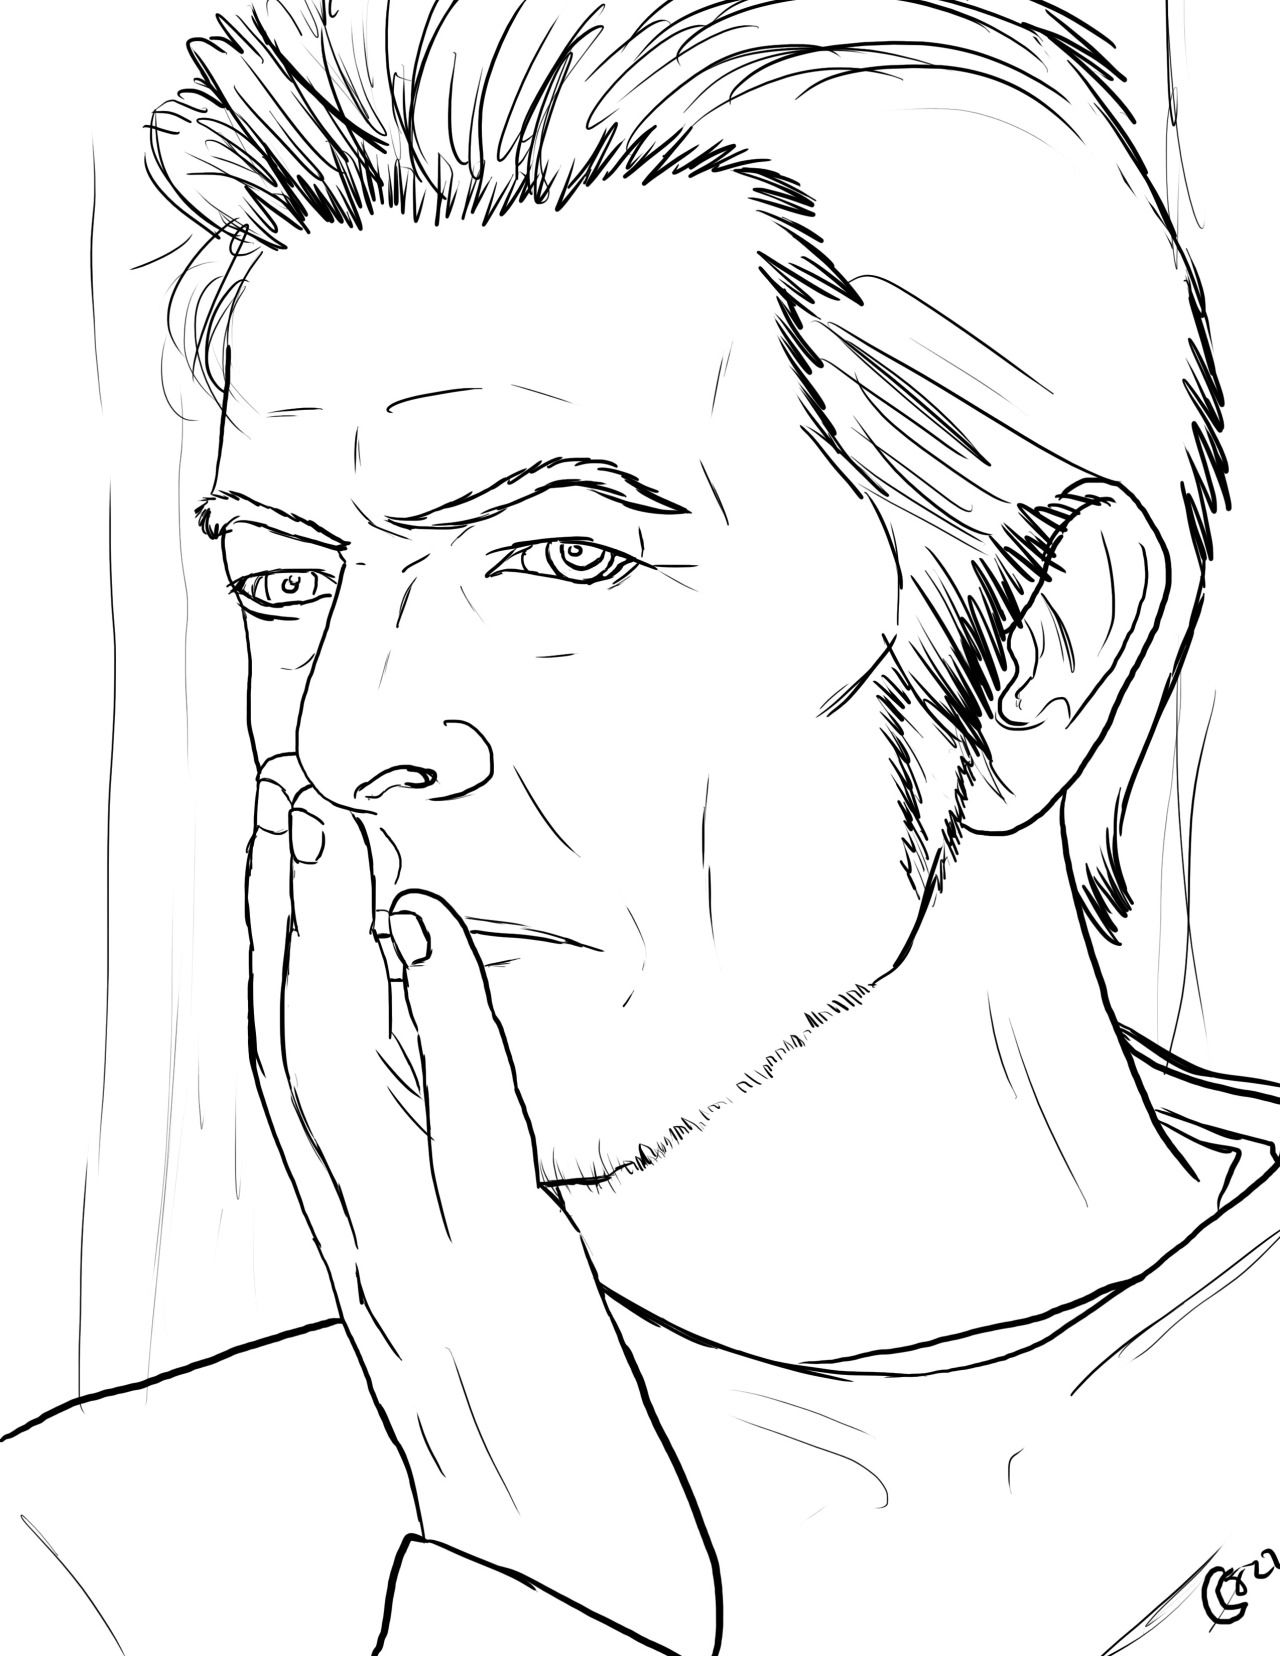 The David Bowie Coloring Book Photo Coloring Books Forest Coloring Book David Bowie